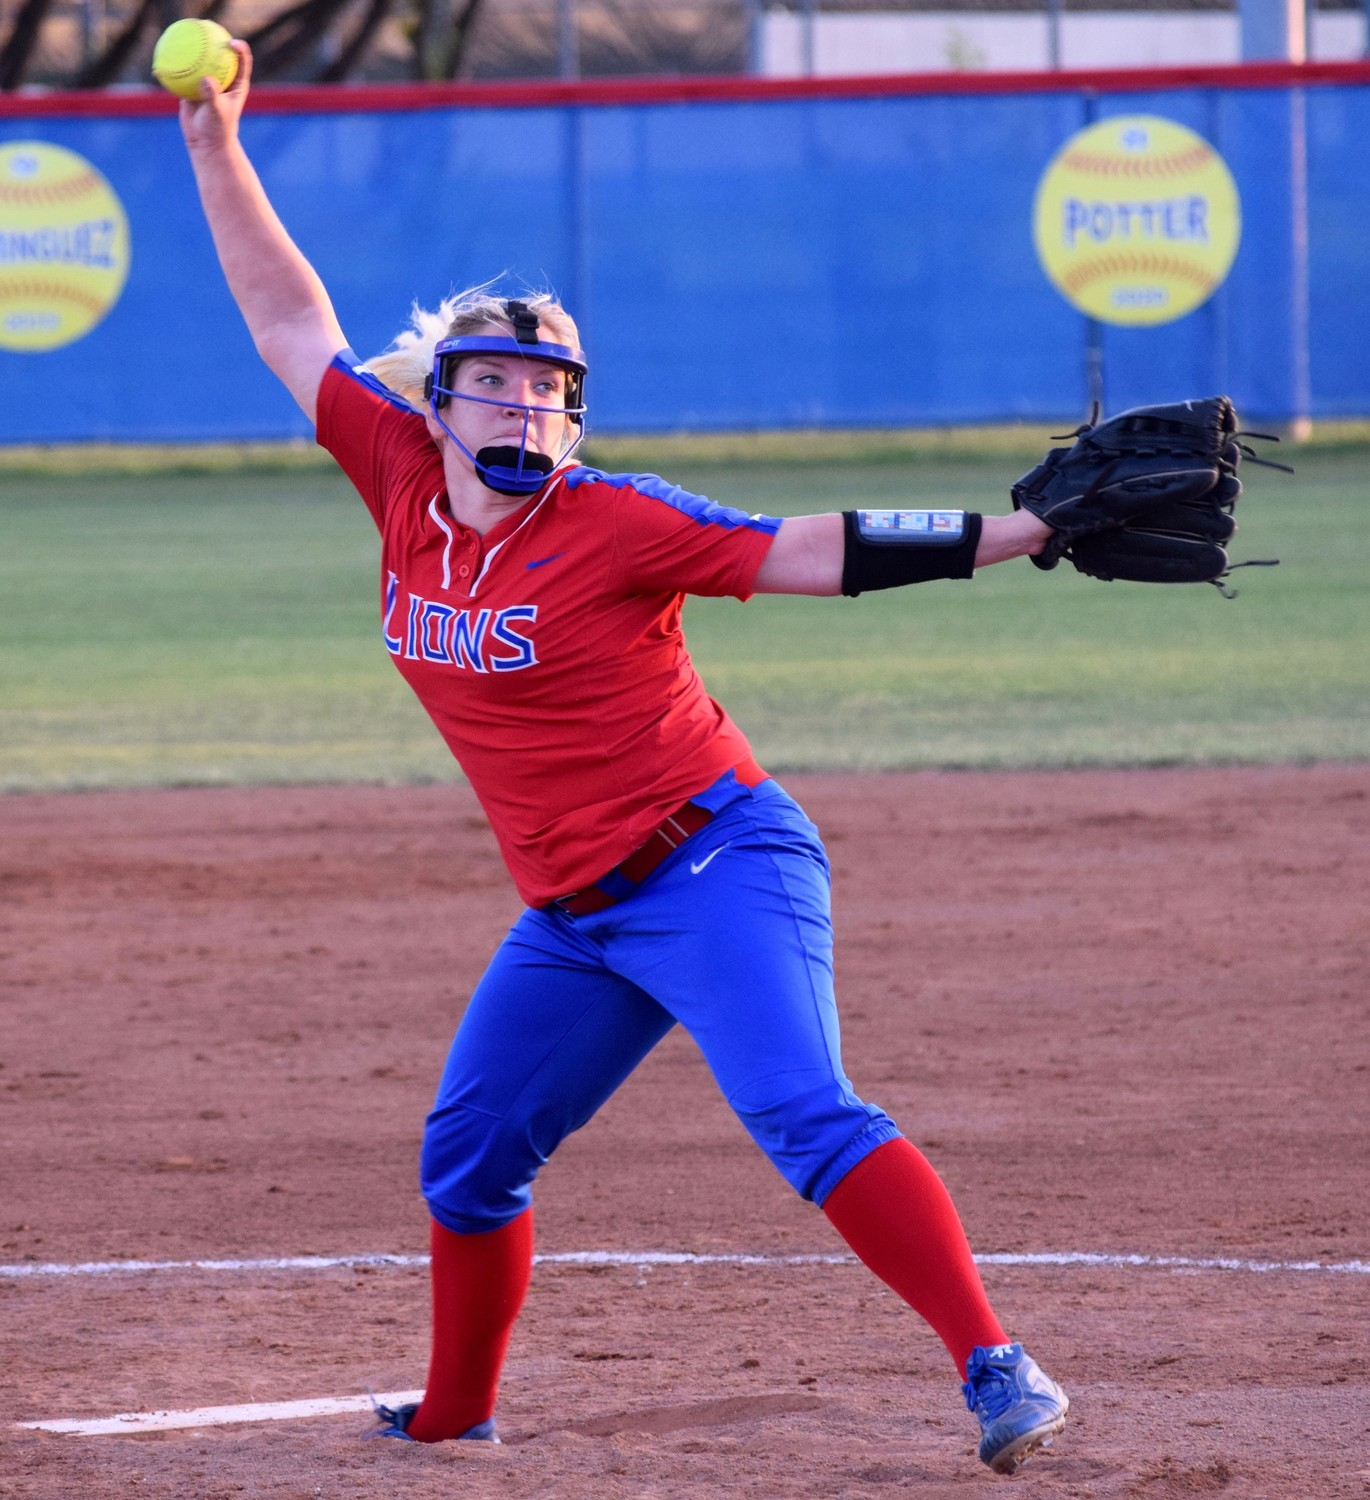 Lindsay Devlin pitched 6.1 innings and Leander beat Westlake 8-5 on Tuesday night to clinch a spot in the postseason.